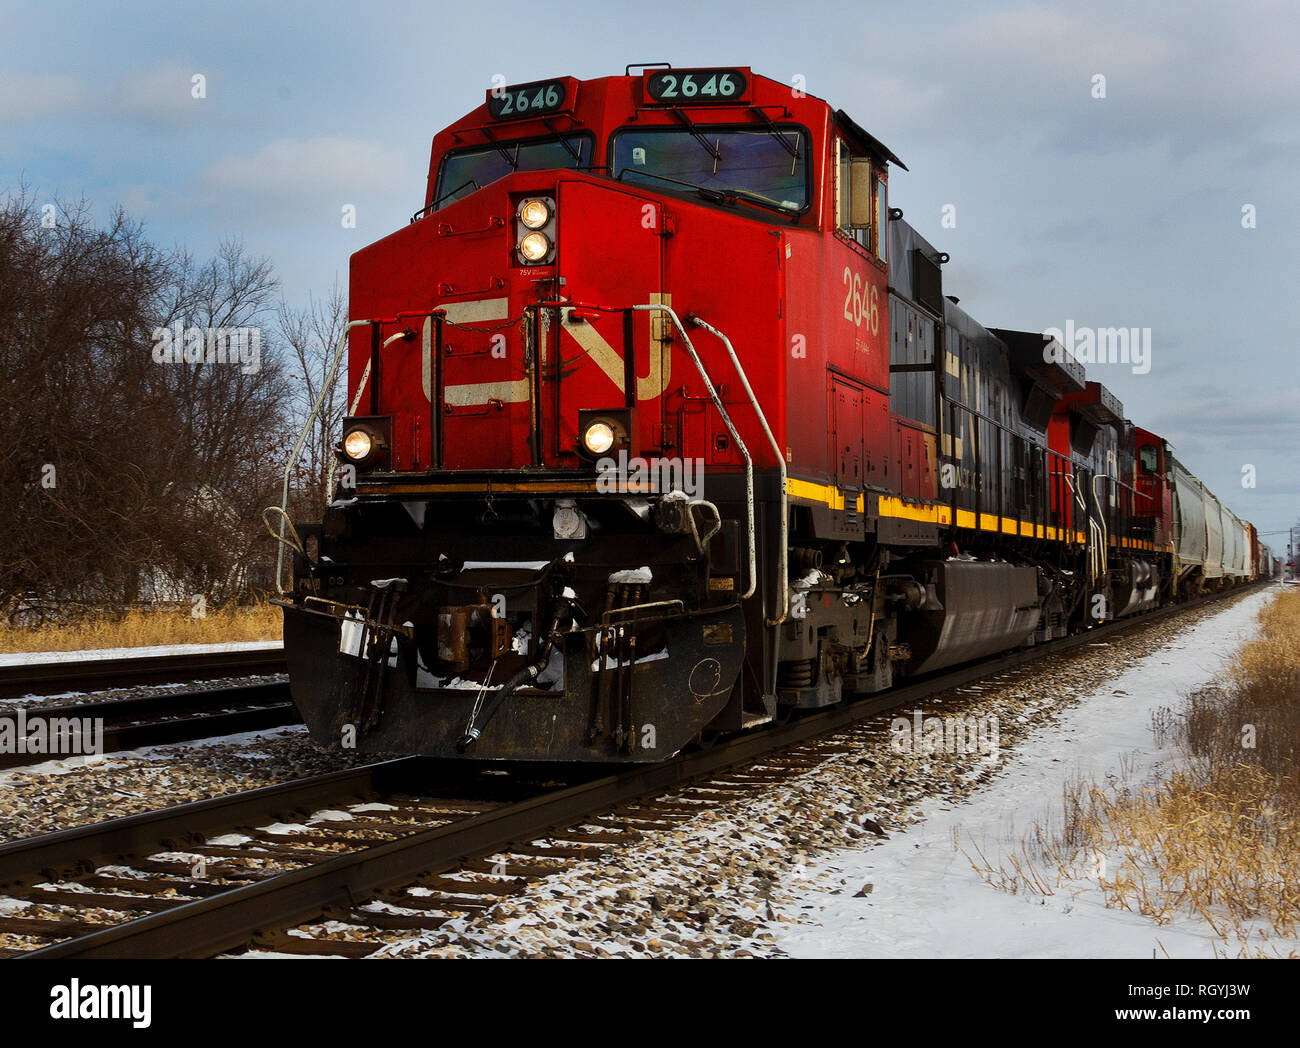 Canadian National Railway #2646 hauling freight through Durand, Michigan in winter - Stock Image